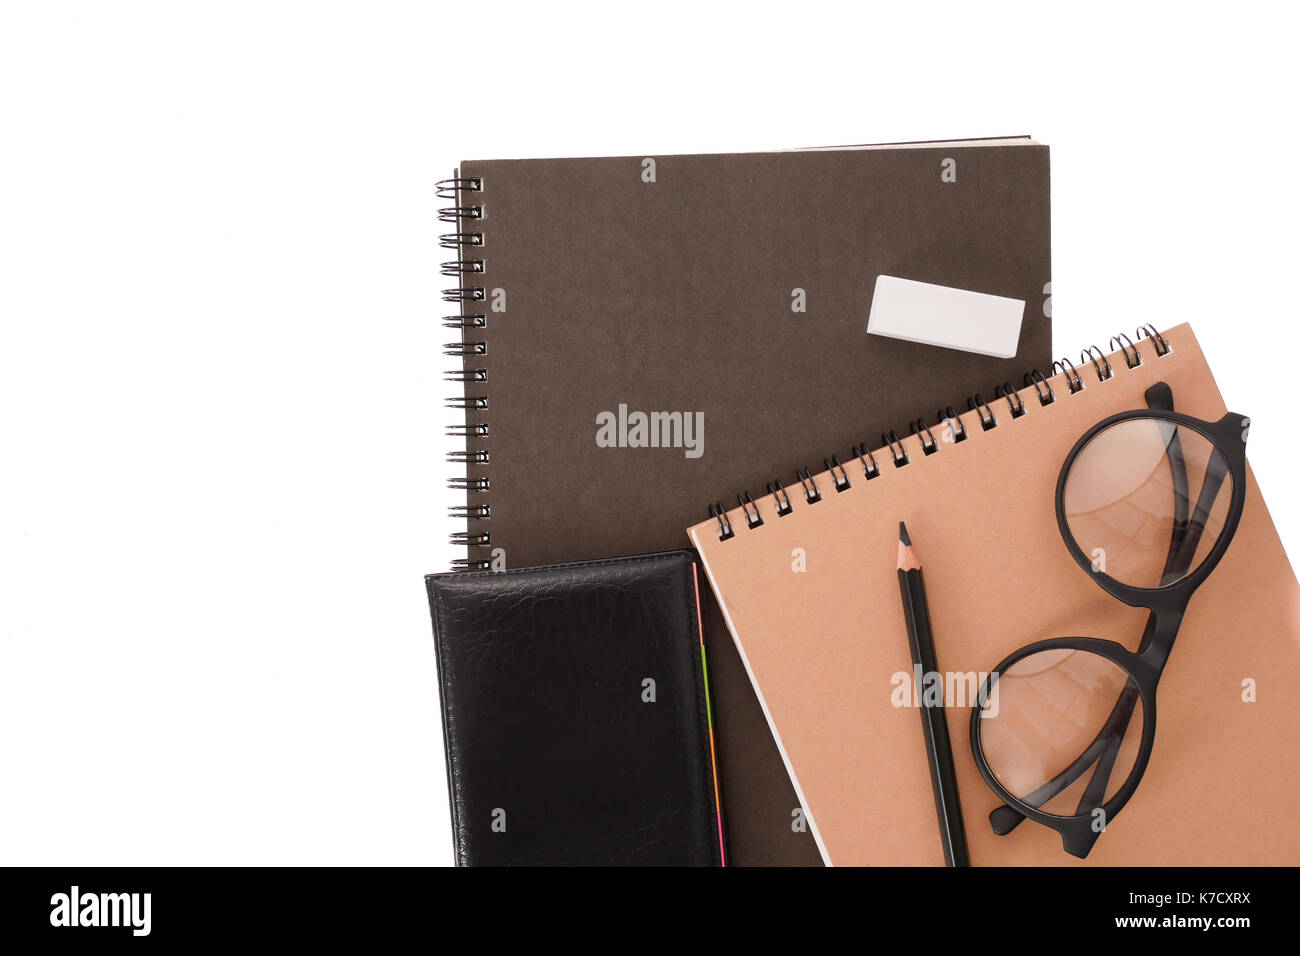 Black Book Cover Images : Black book cover white background stock photos